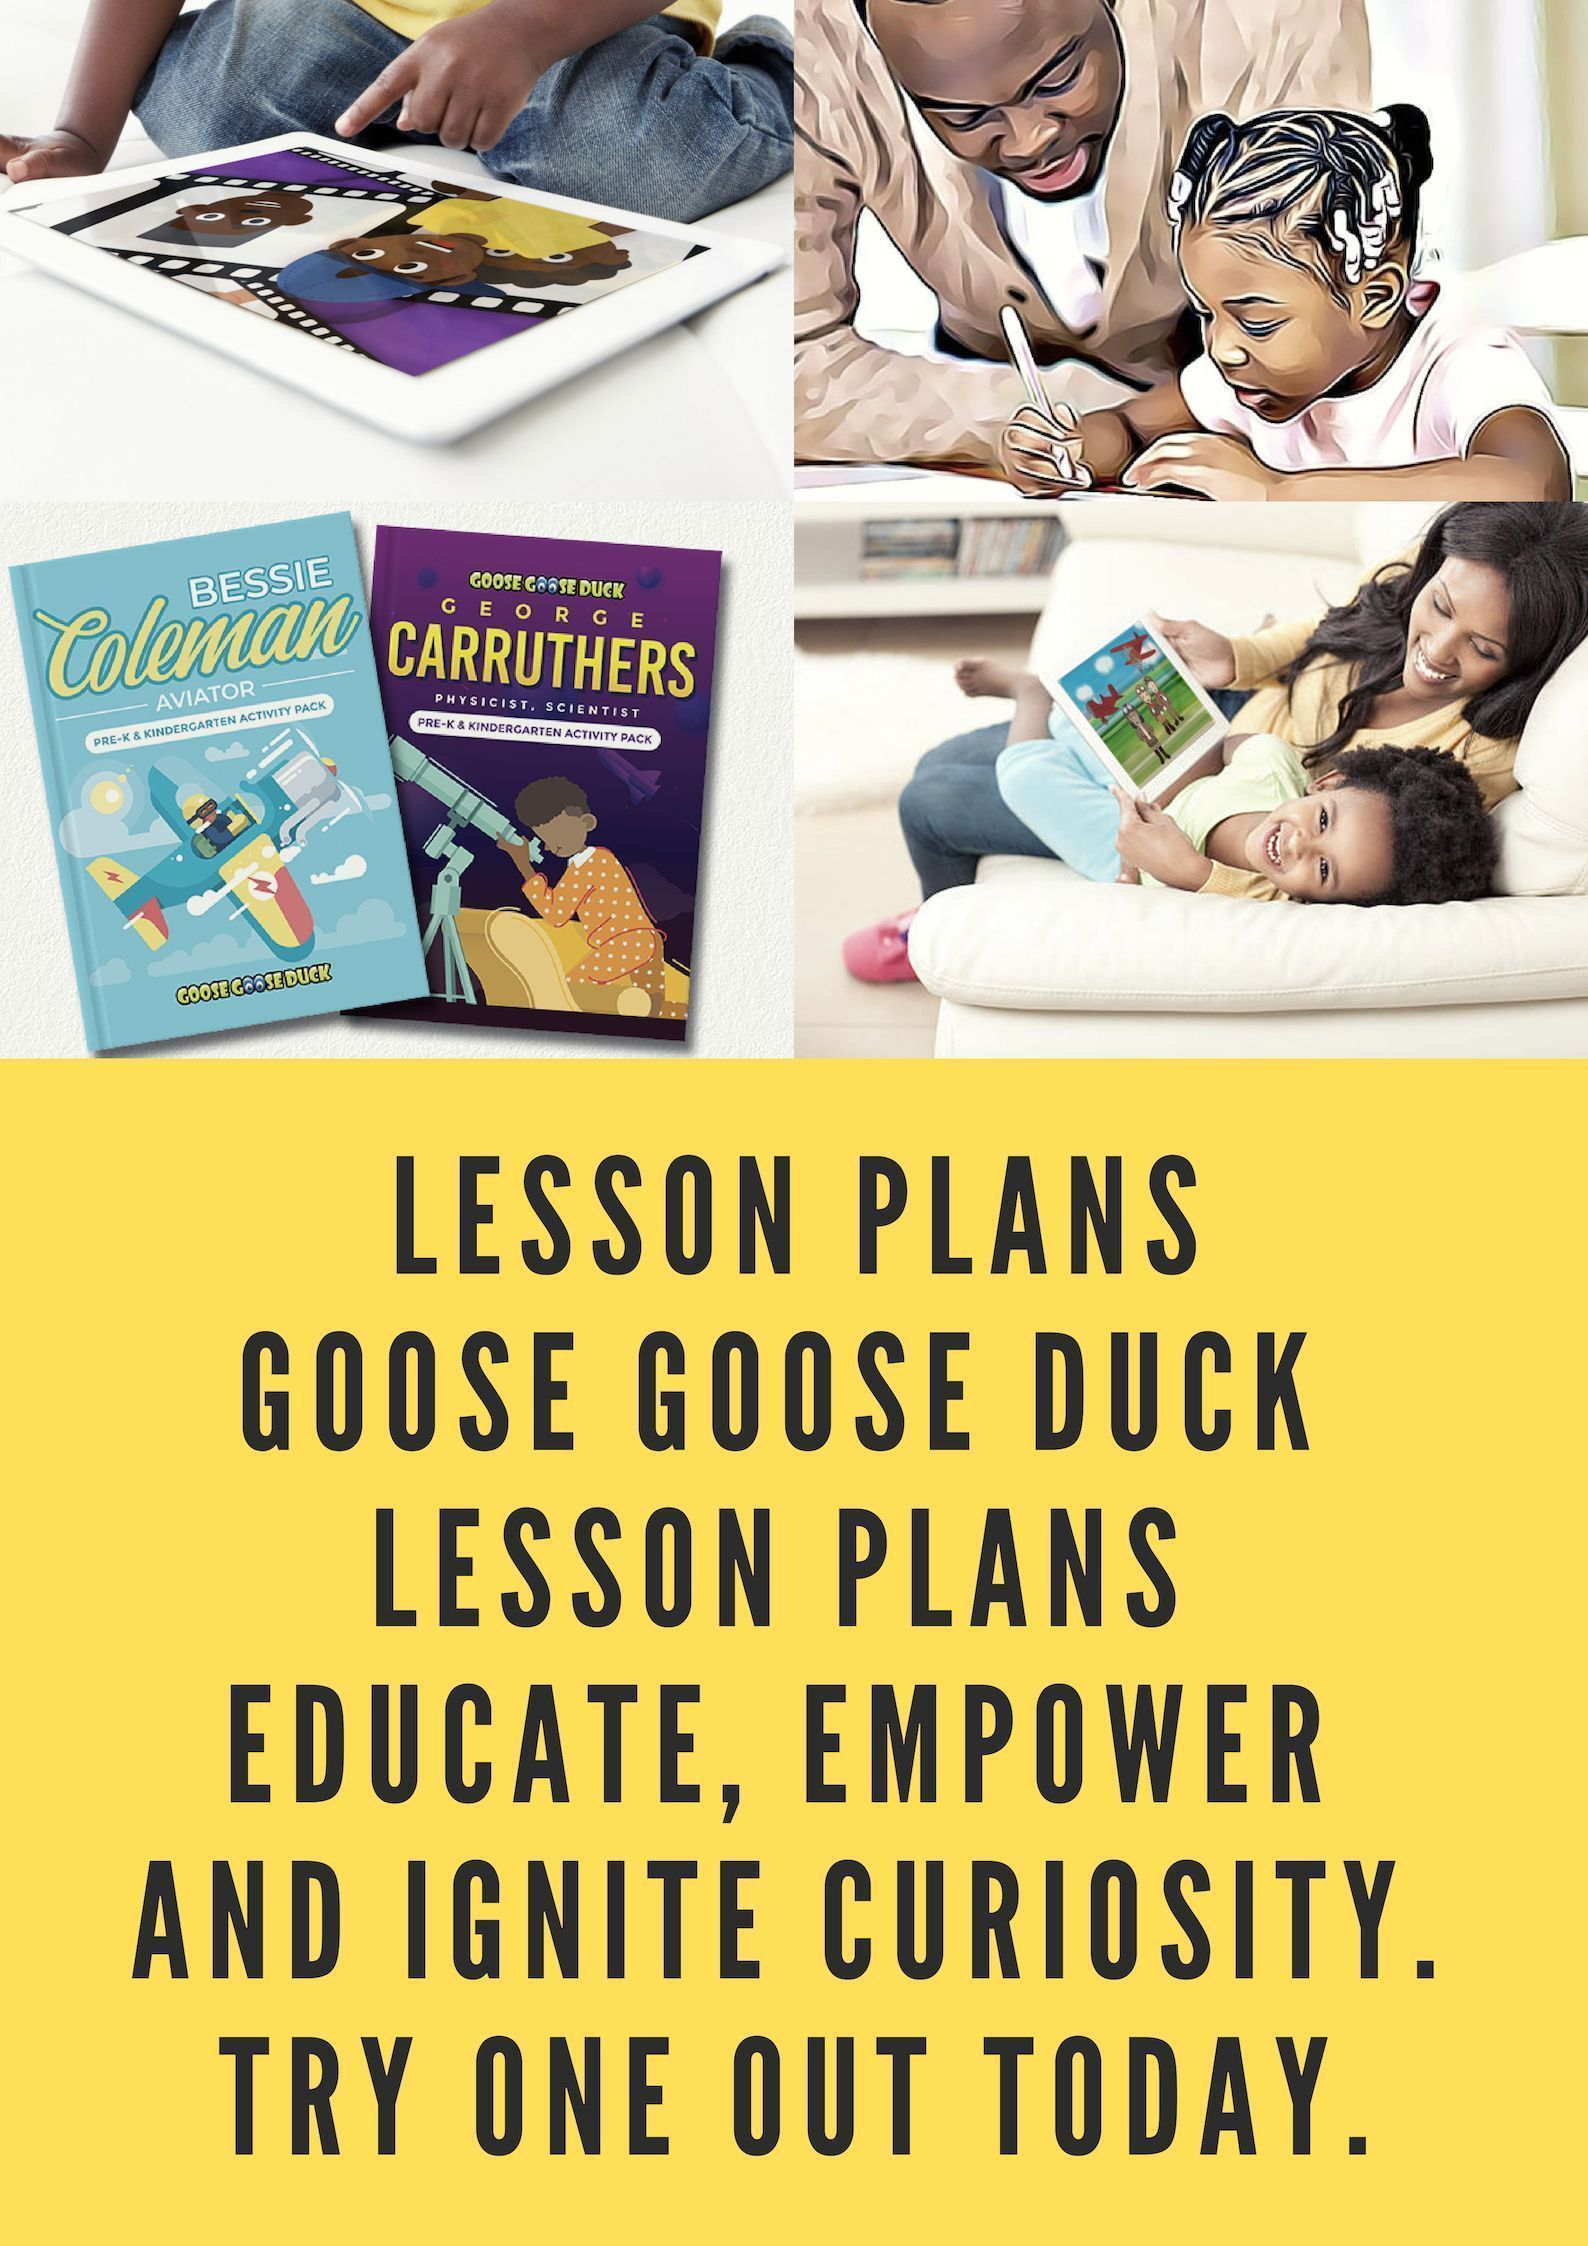 Goose Goose Duck Lesson Plans Are Age Appropriate